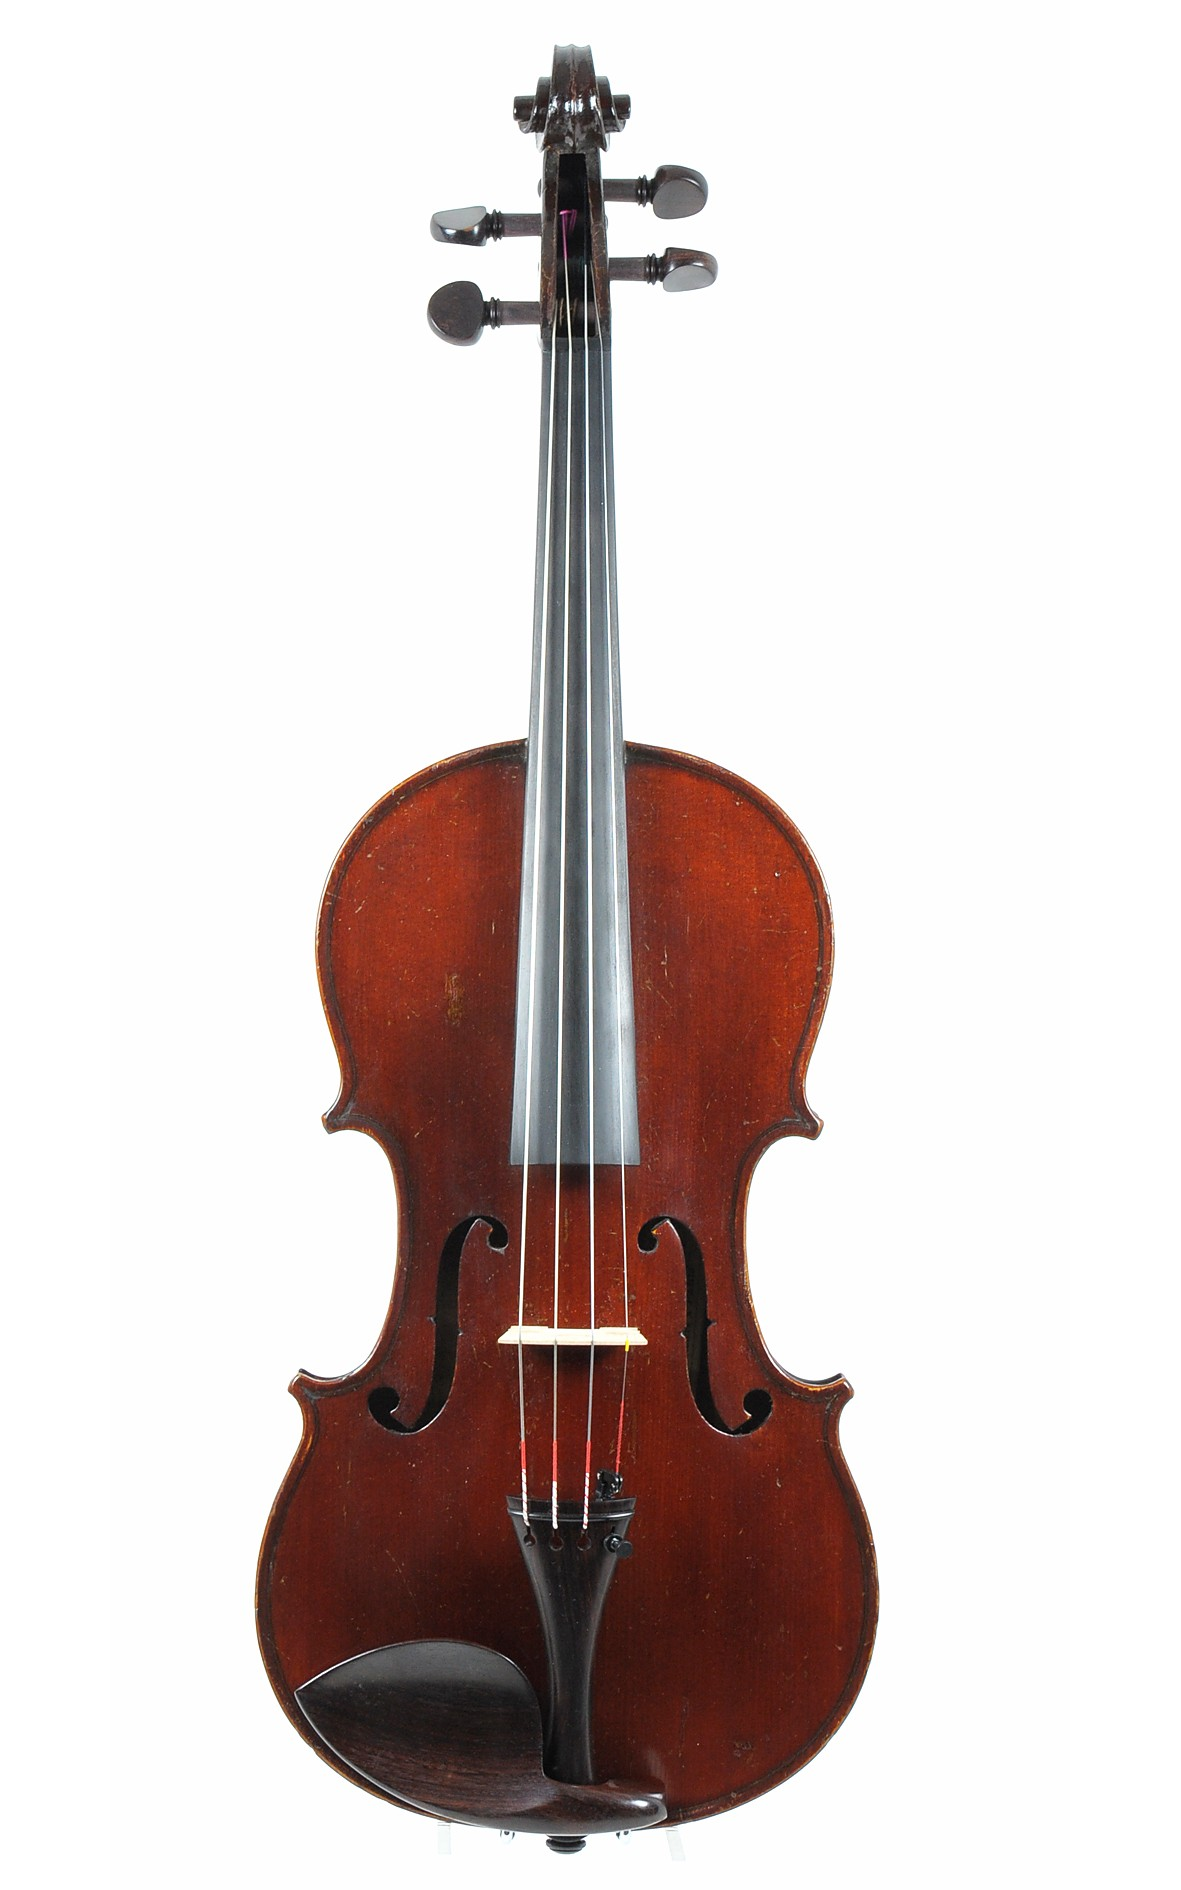 Violin with stamp Nicholas Duchene (JTL), Mirecourt ca. 1900 - top